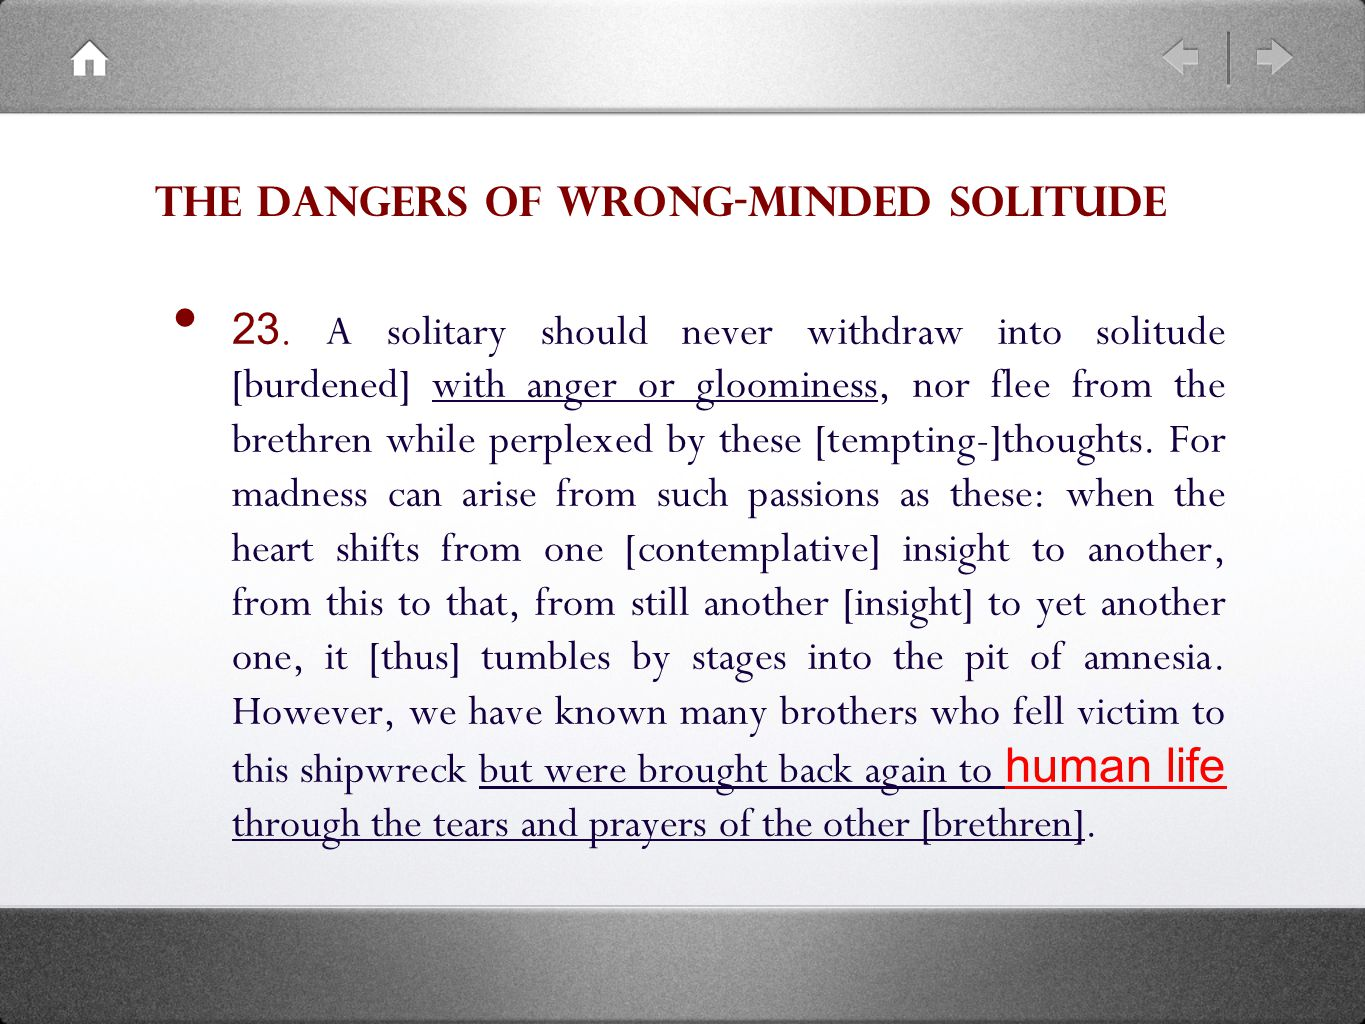 23. A solitary should never withdraw into solitude [burdened] with anger or gloominess, nor flee from the brethren while perplexed by these [tempting-